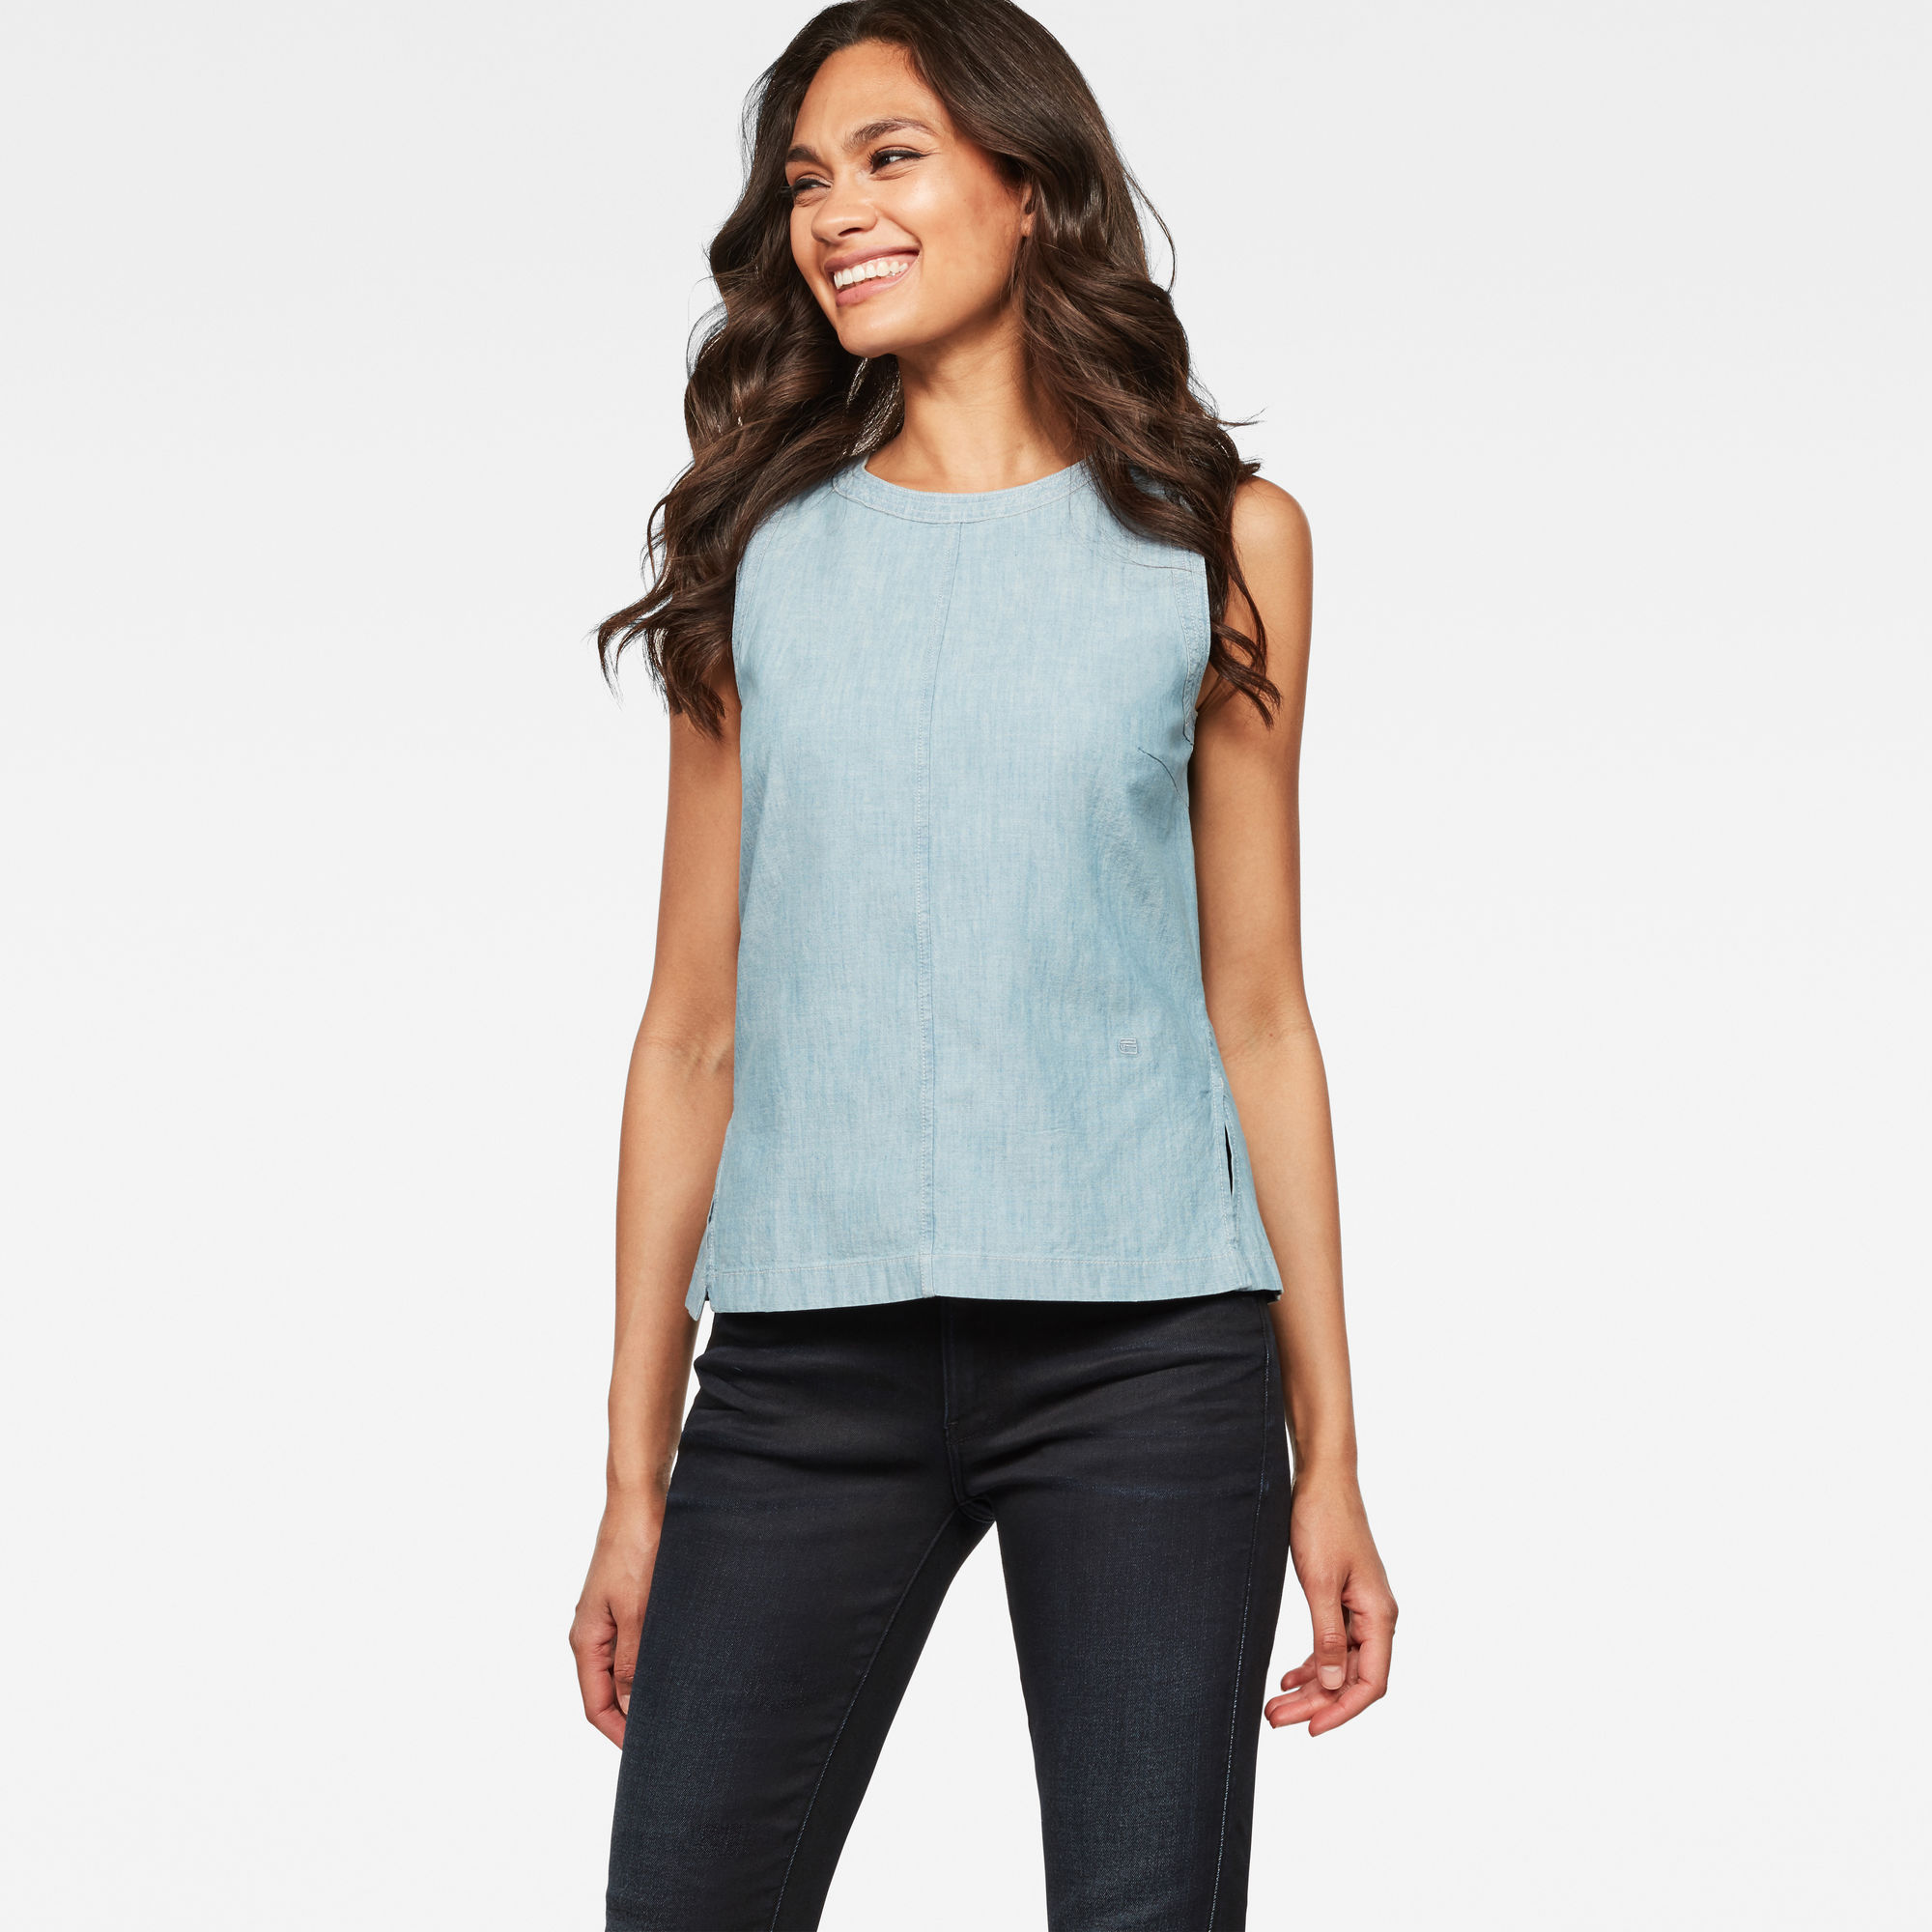 Image of G Star Raw Deline Sleeveless Top